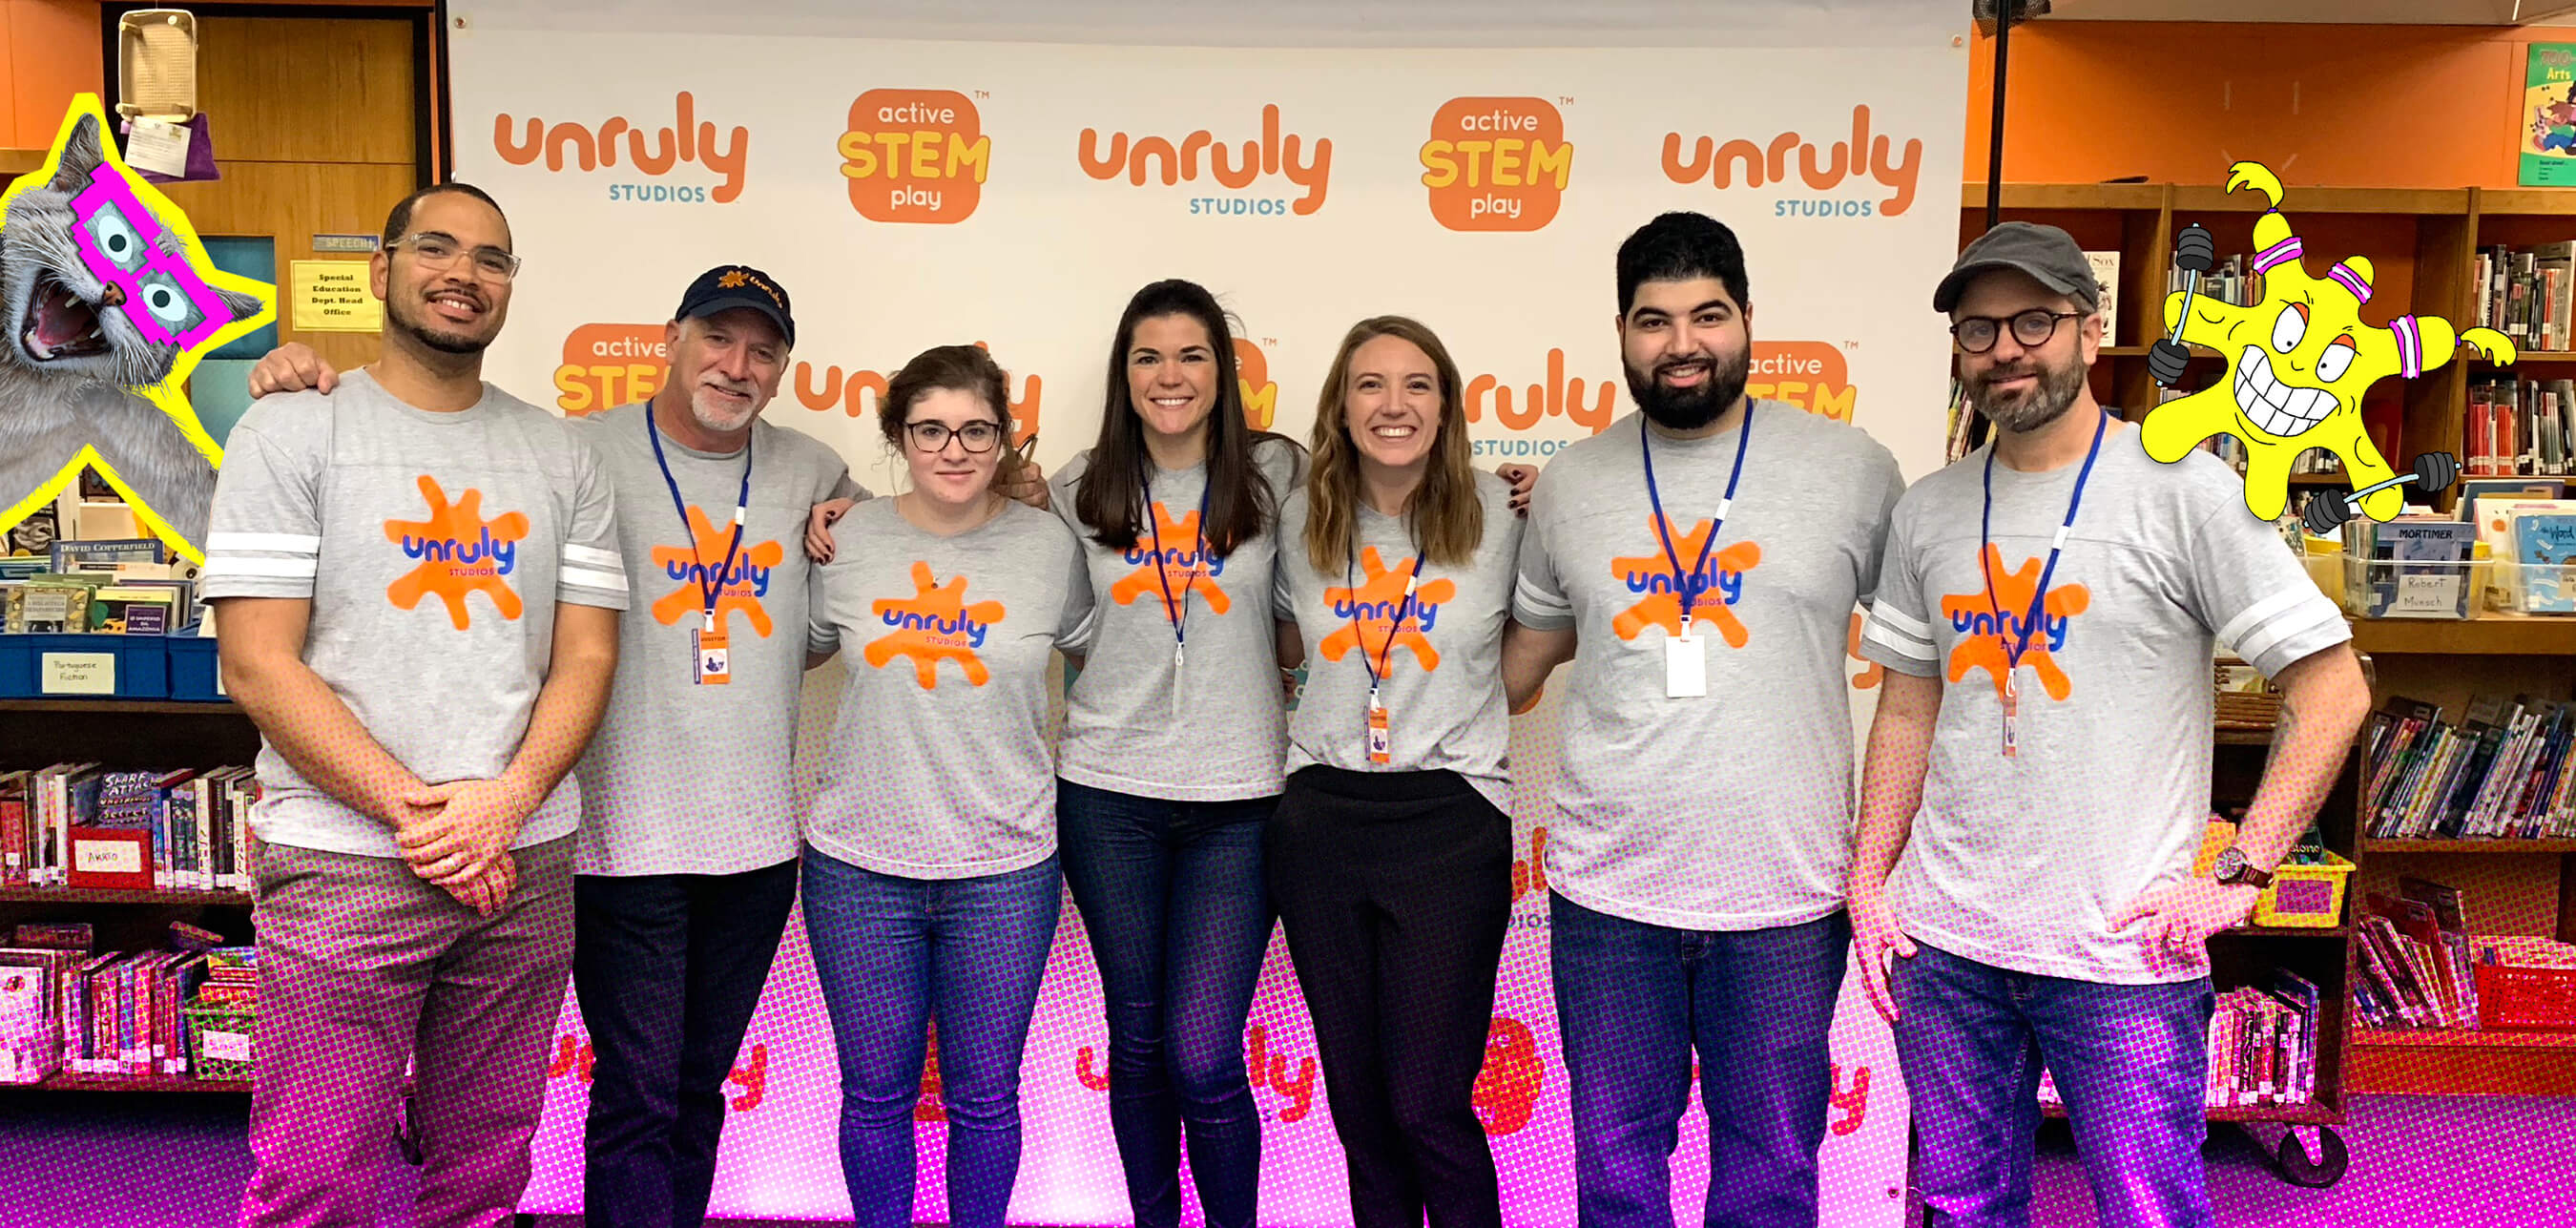 Exciting News for Unruly: We Raised a Seed Round!